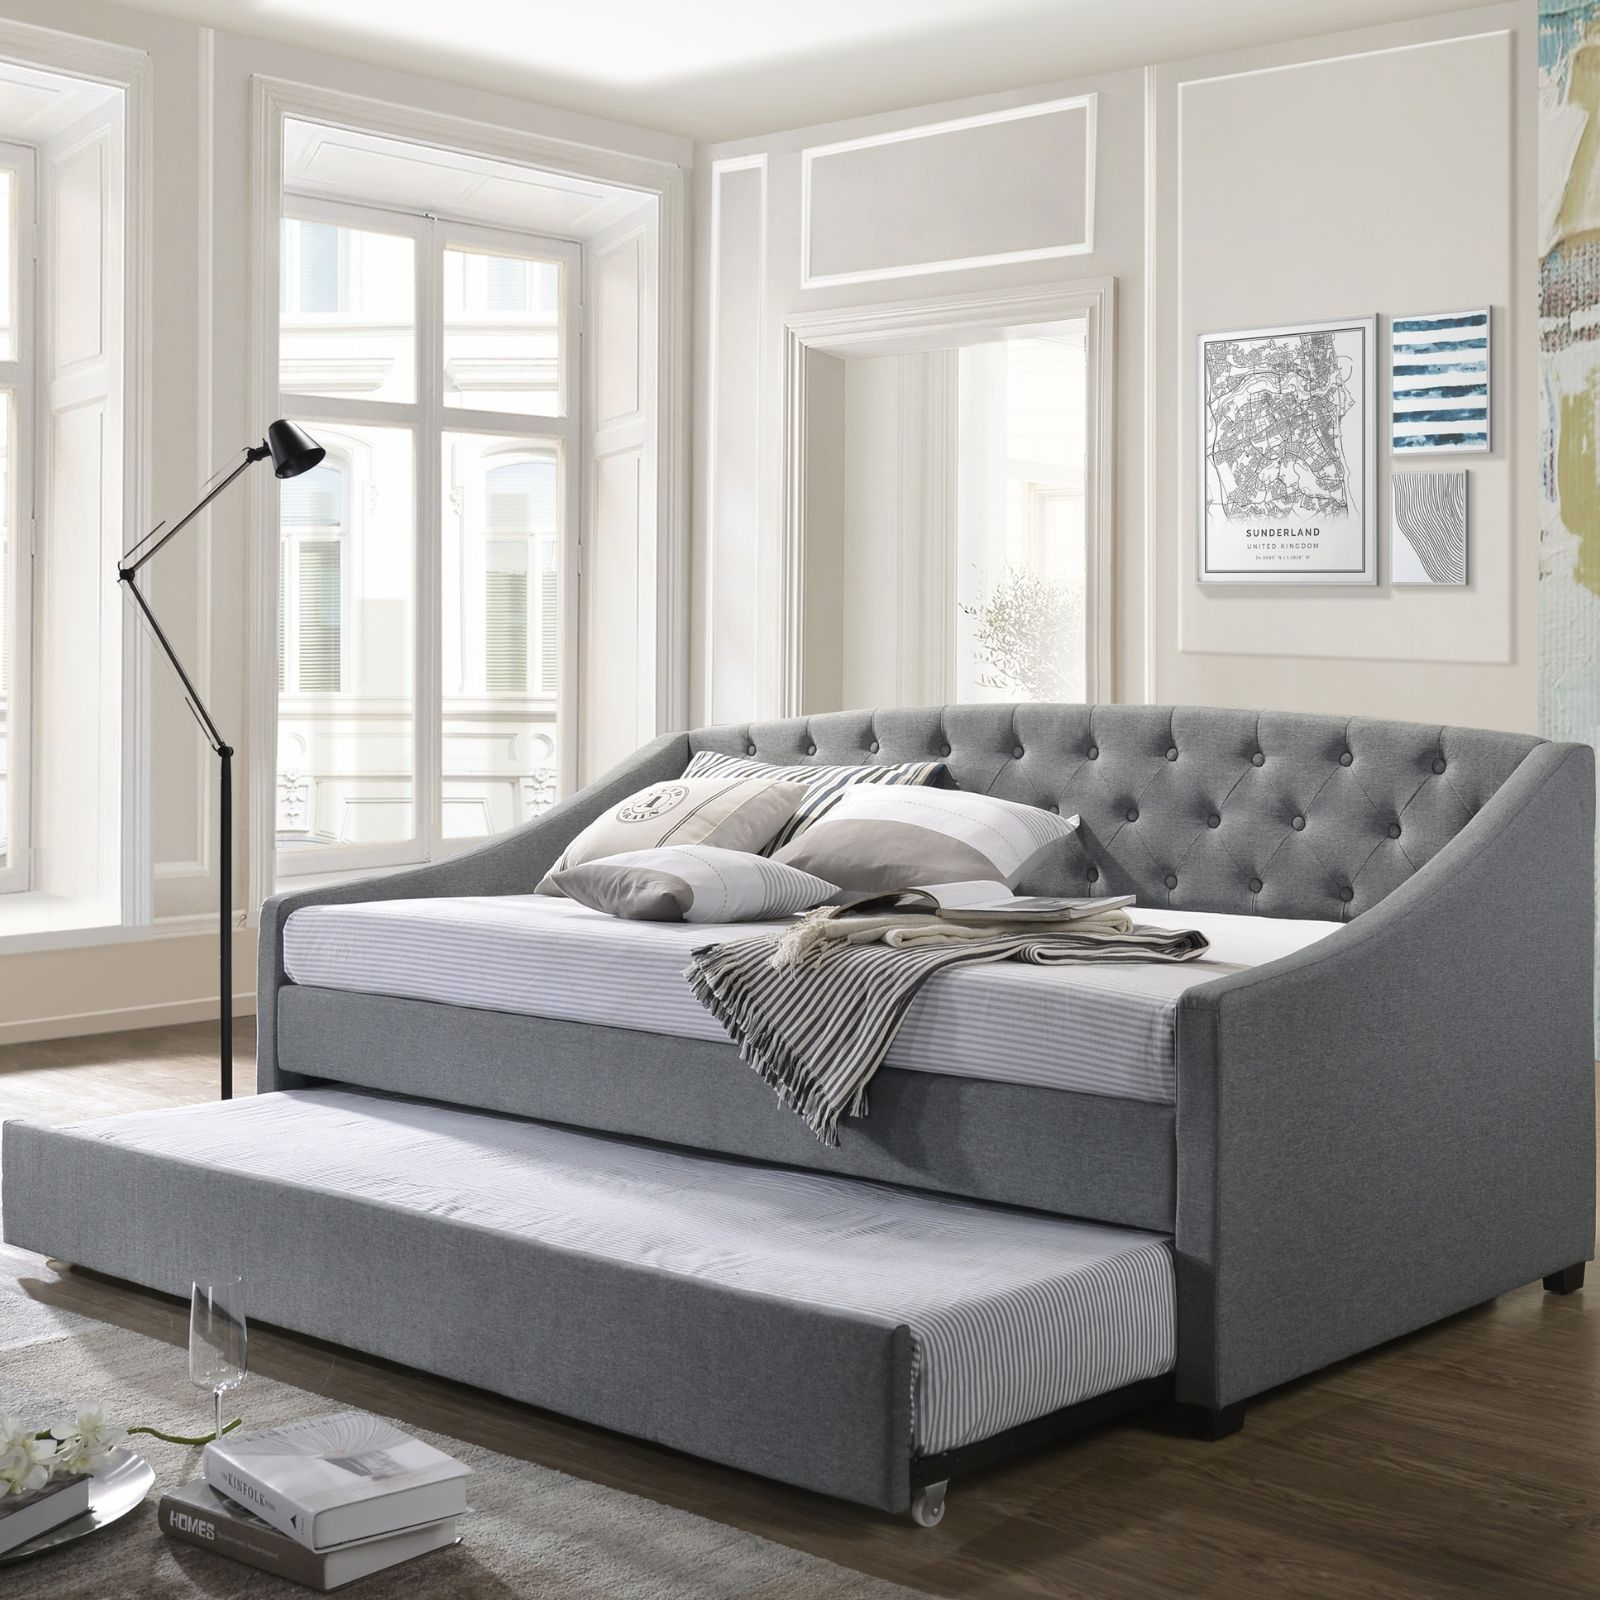 Daybed With Trundle Single Bed Frame Fabric Grey Buy